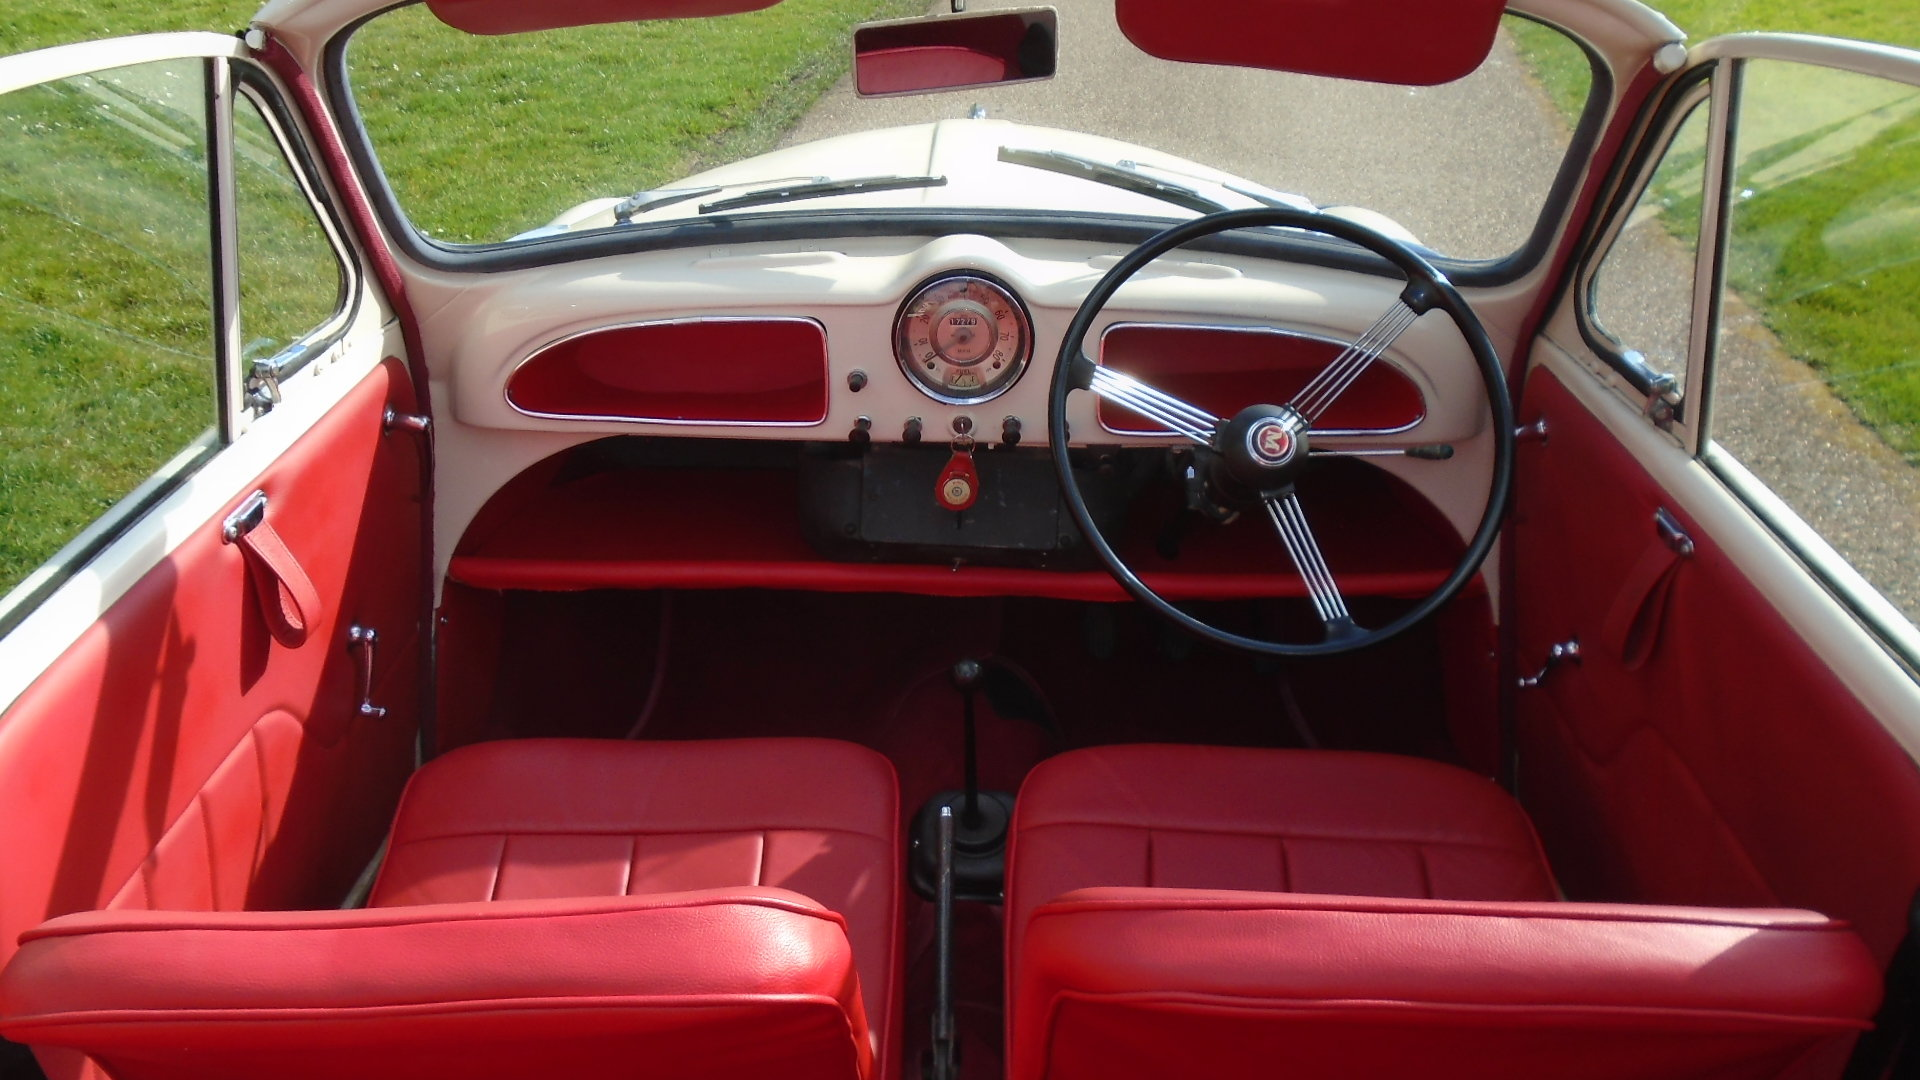 1962 Morris Minor Convertible, Genuine Tourer. For Sale (picture 6 of 10)